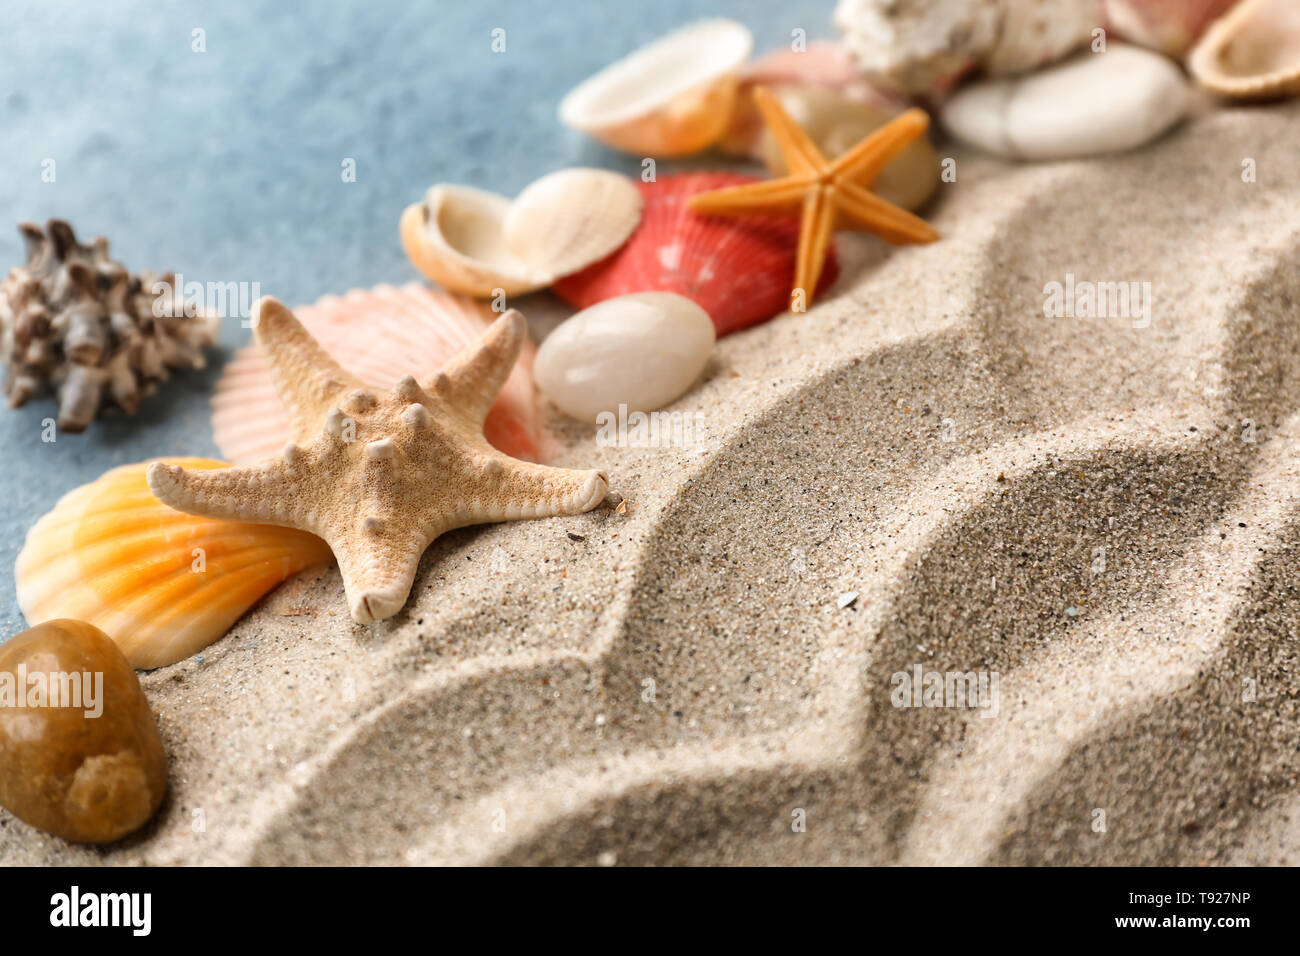 Different sea shells, starfish and sand on color background - Stock Image